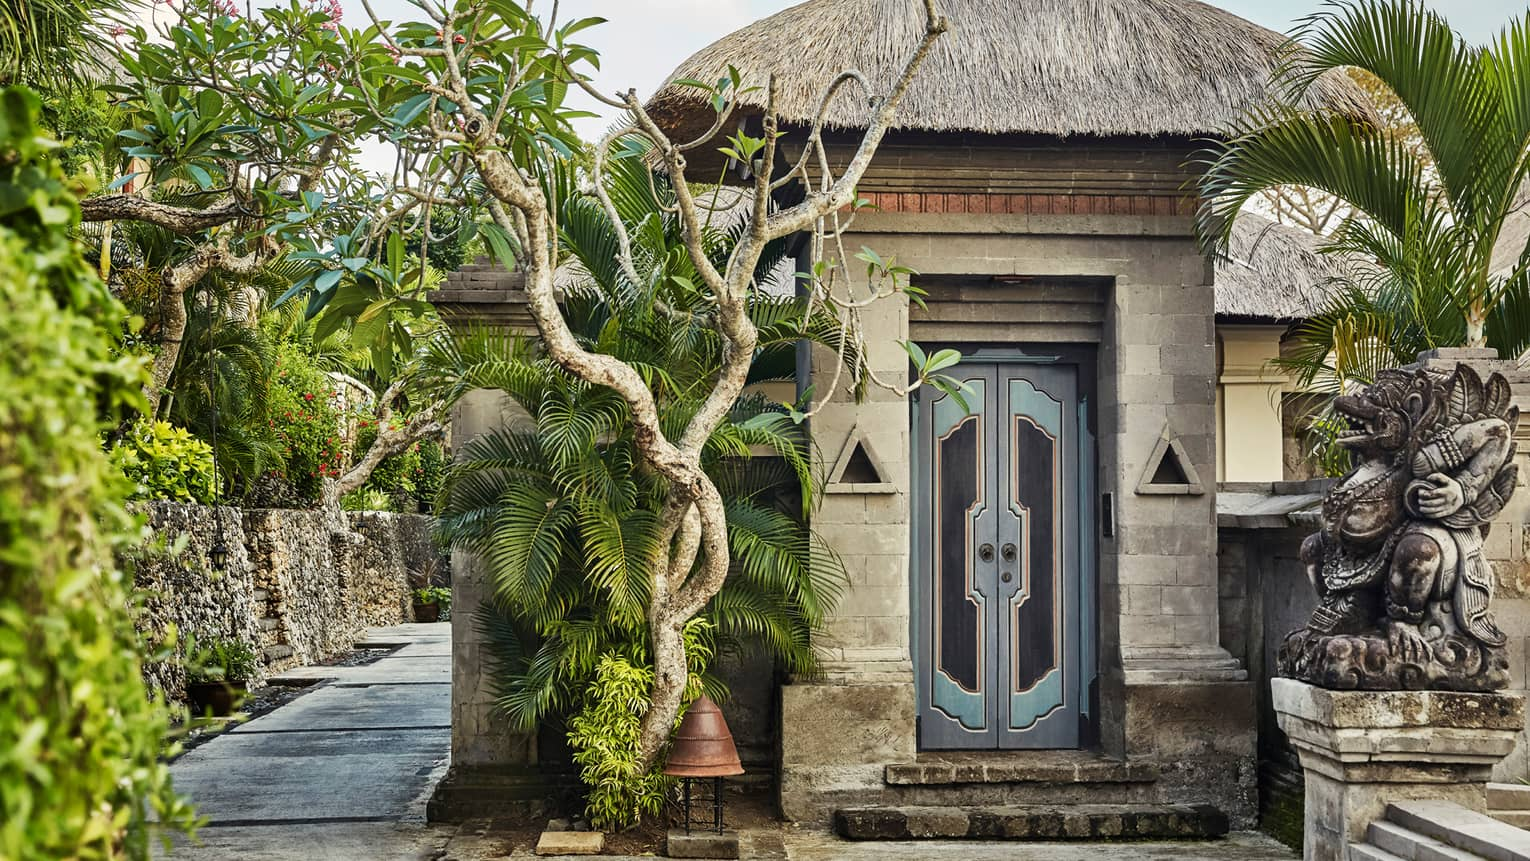 Stone wall, steps by tall rustic blue door under thatched roof, twisted tropical trees